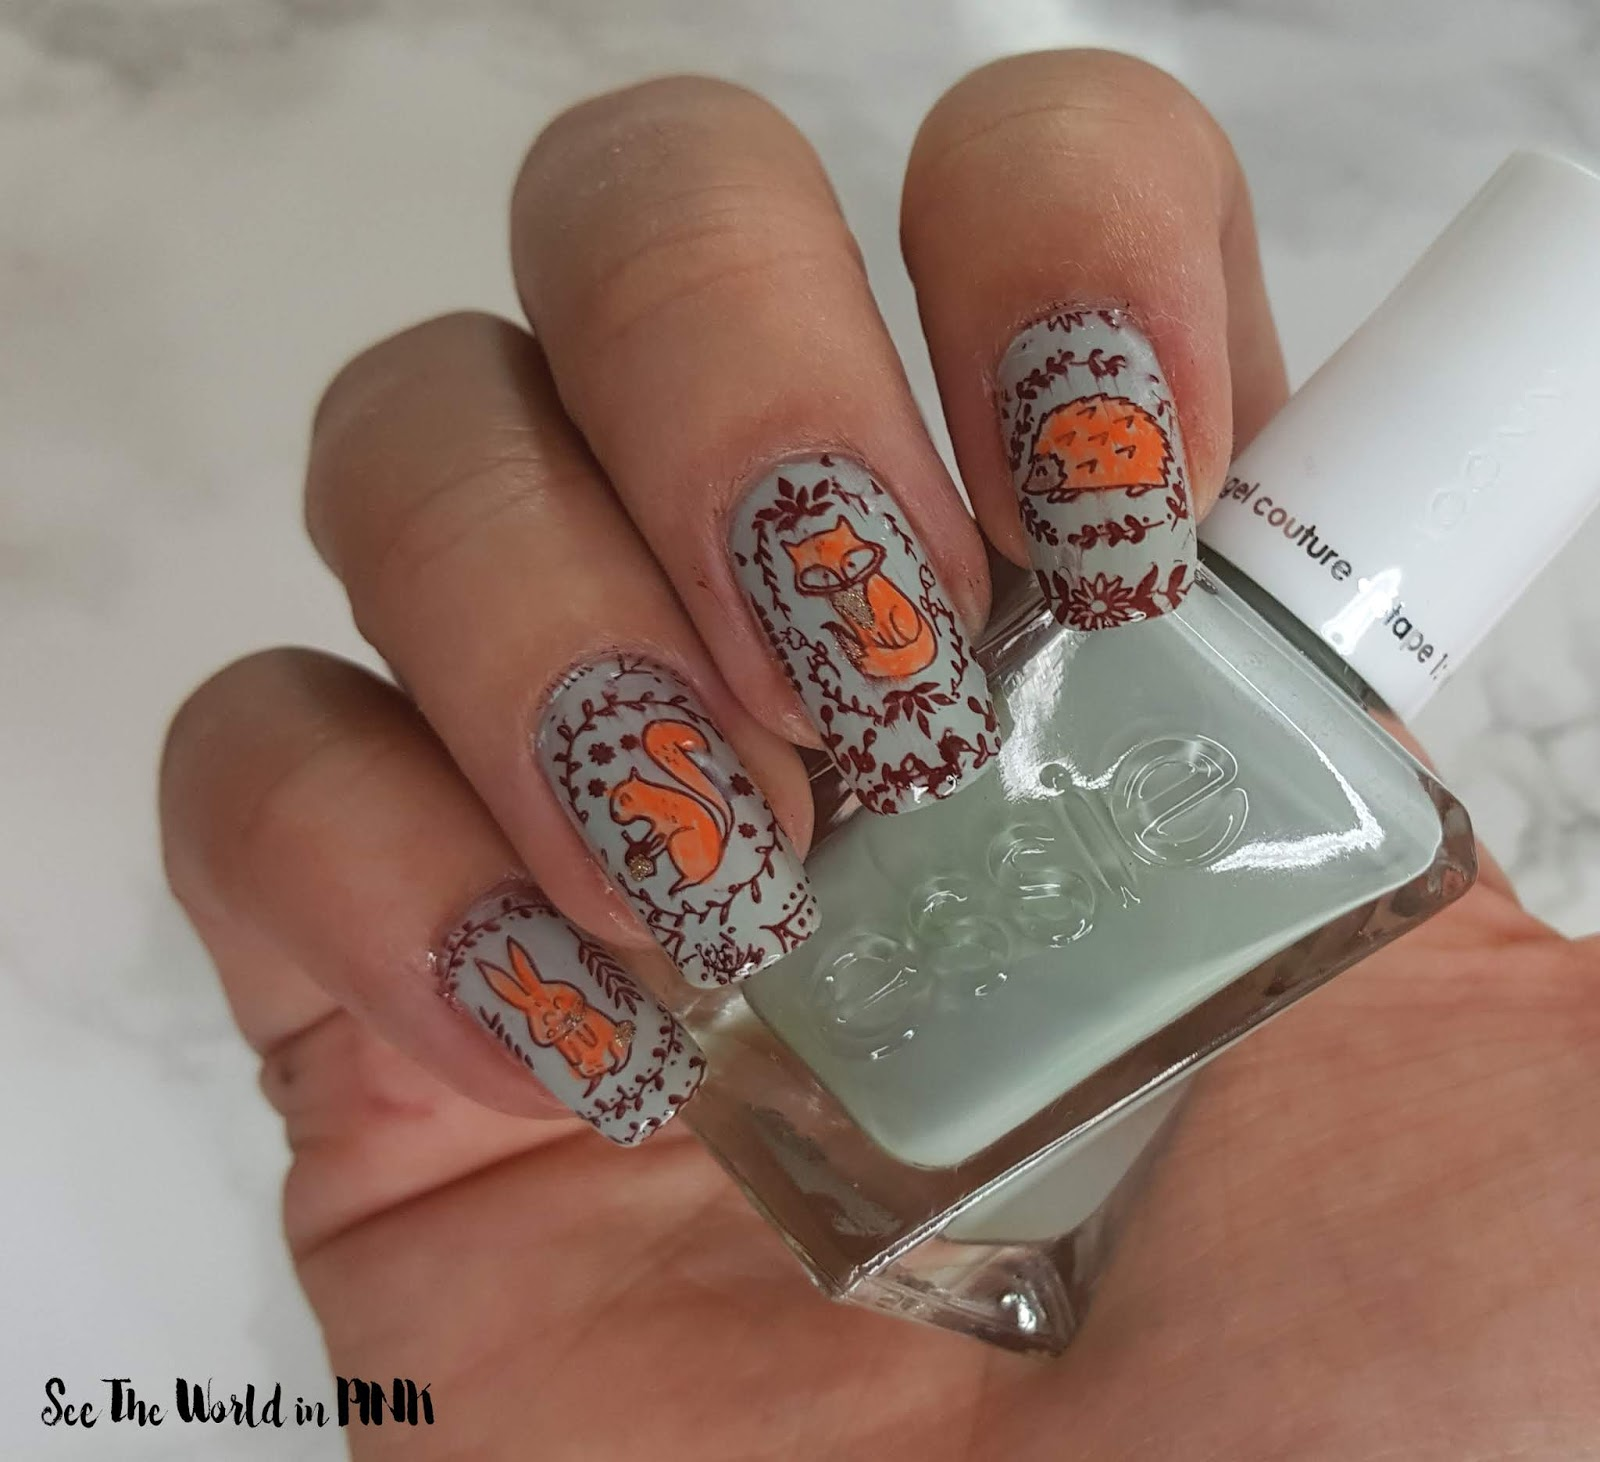 Manicure Monday - Fall Forest Friends Stamped Nail Art